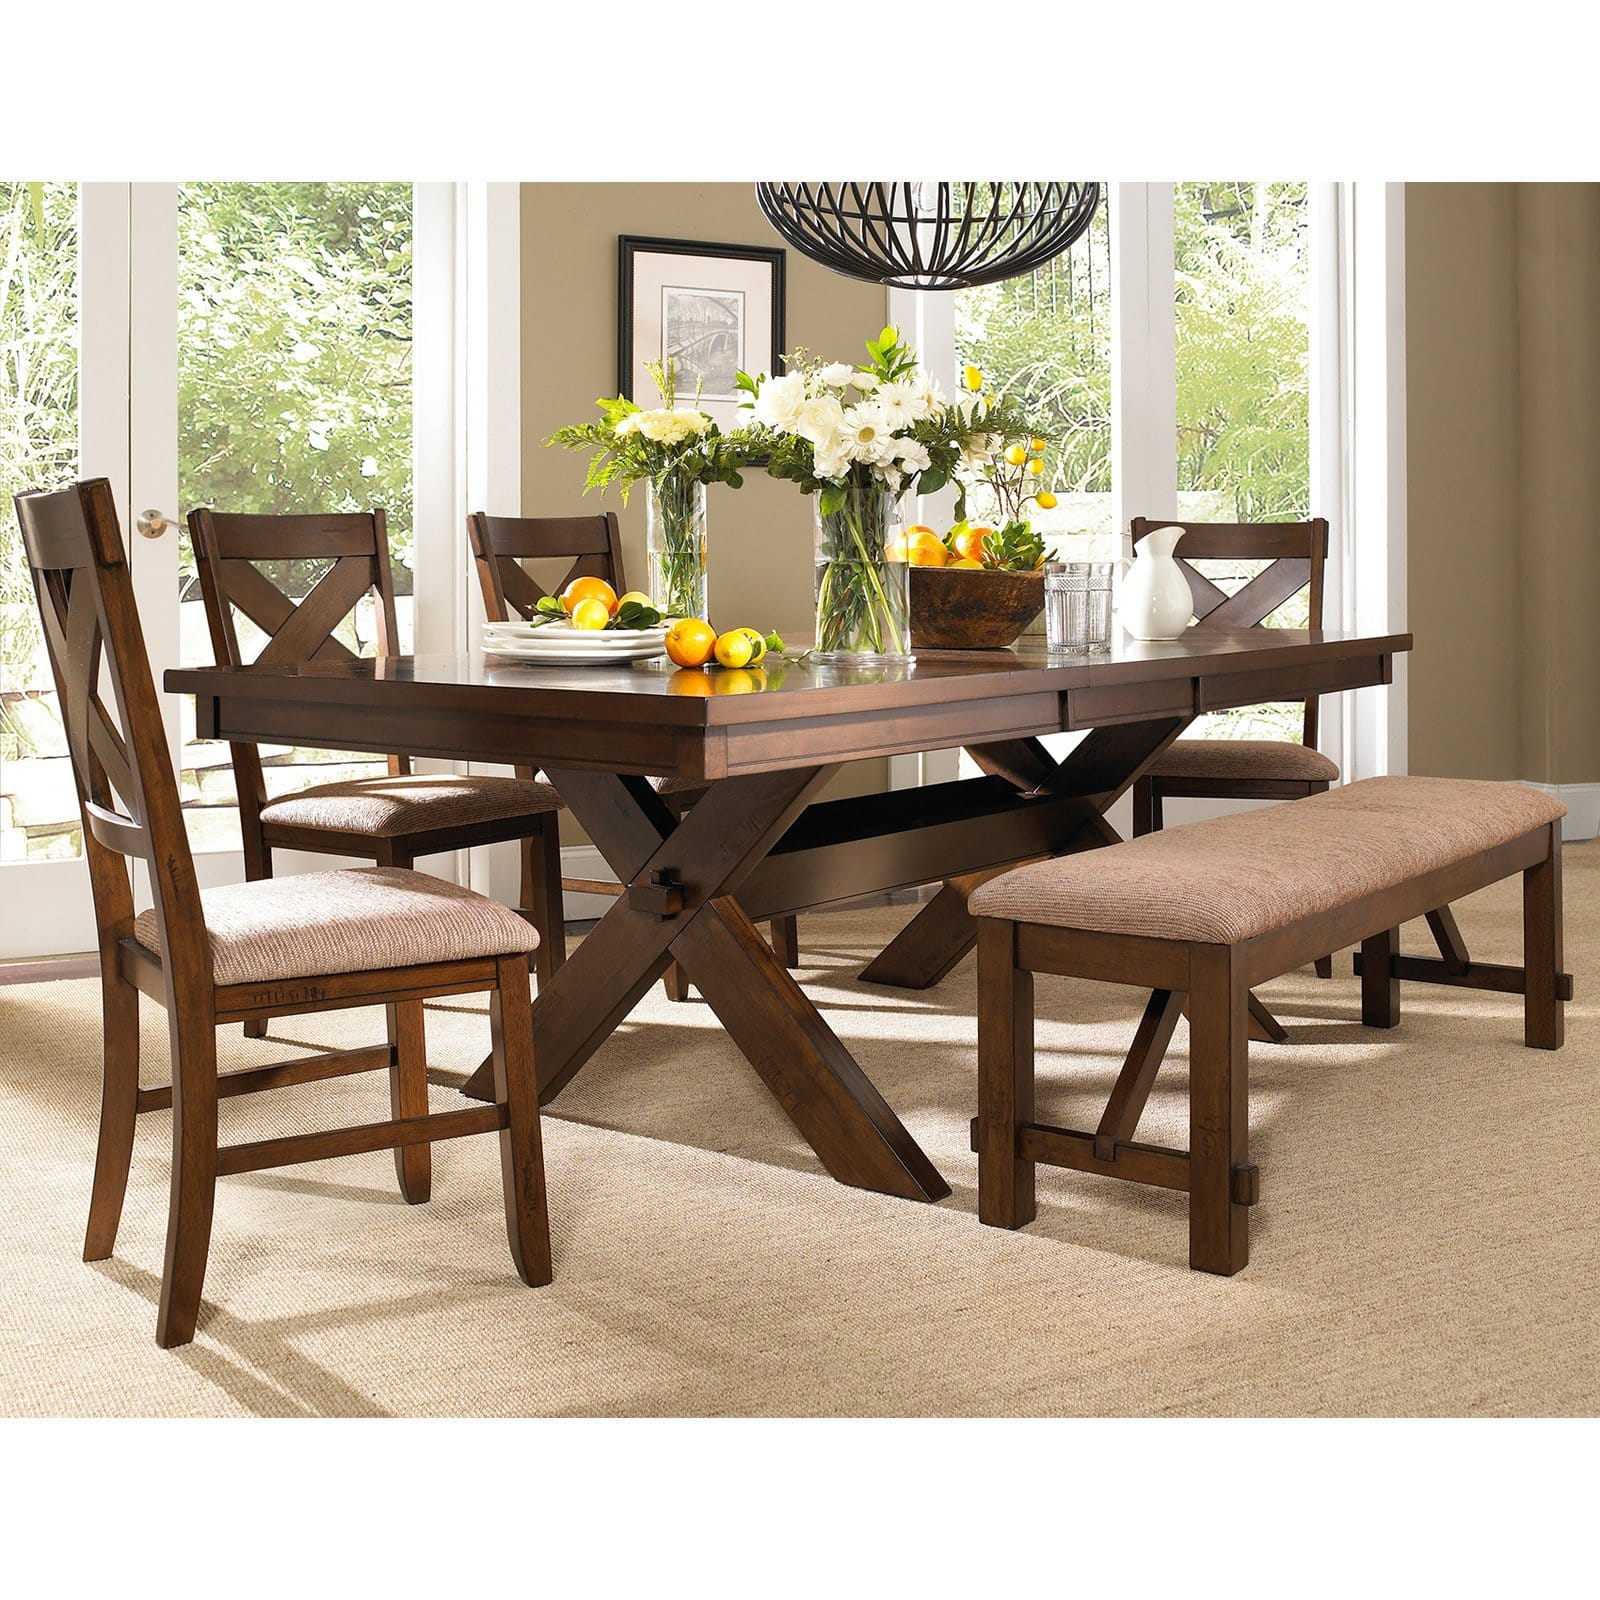 6 Piece Karven Solid Wood Dining Set, Dining Room Table With 4 Chairs And A Bench